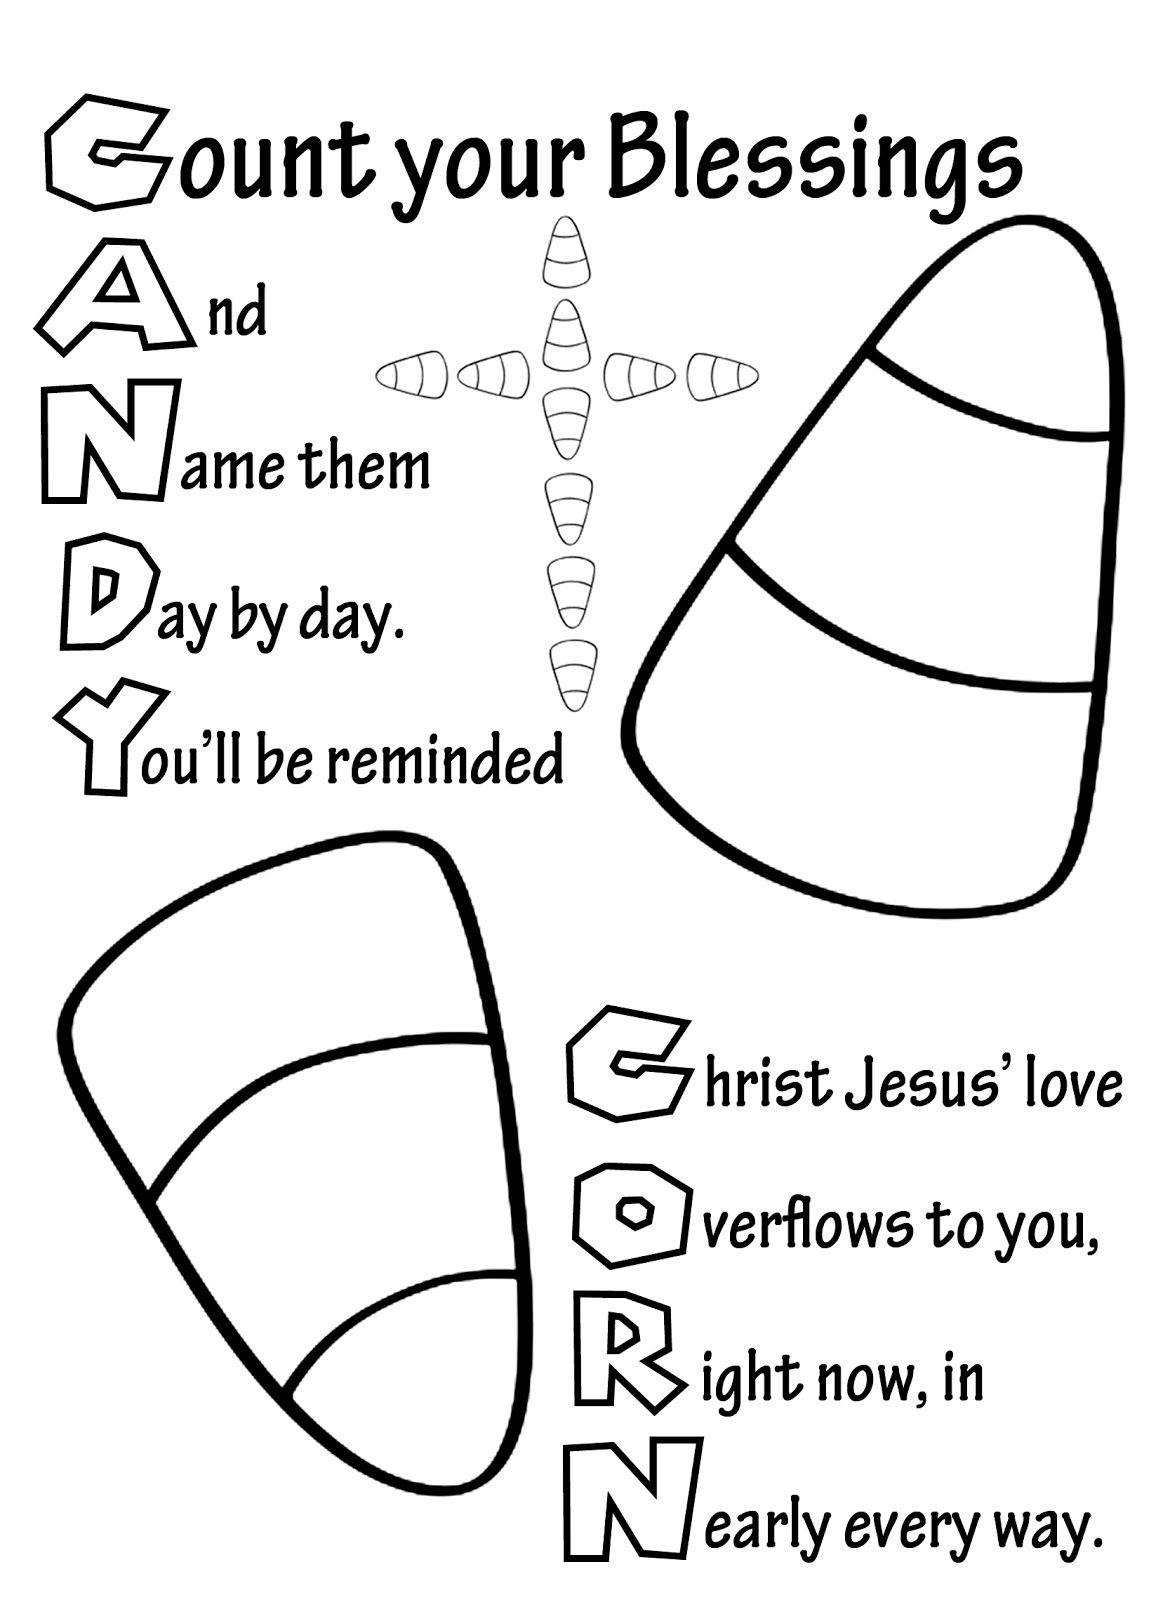 Christian coloring page | Sunday school activities ...